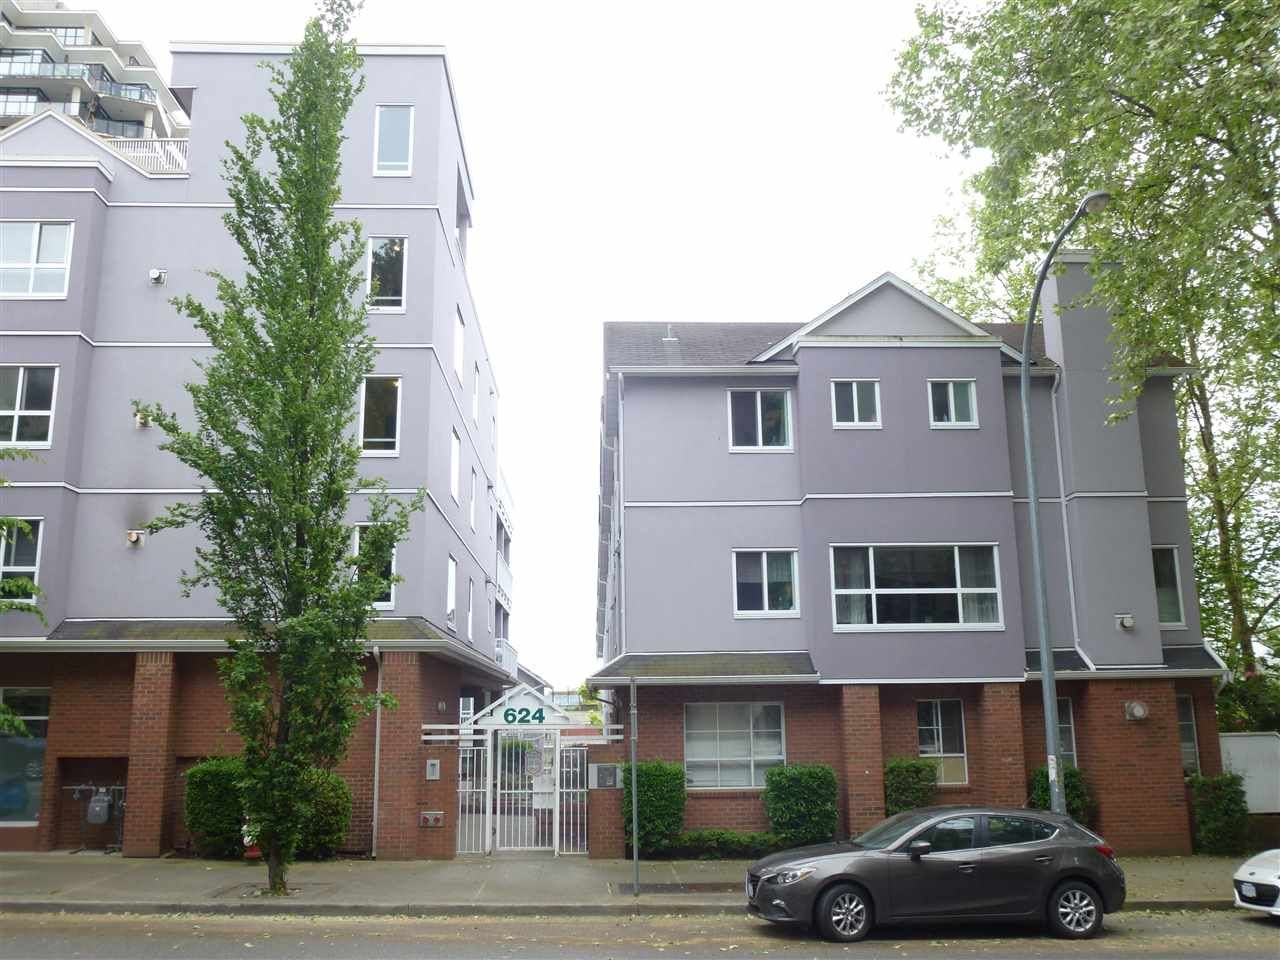 """Main Photo: 305 624 AGNES Street in New Westminster: Downtown NW Condo for sale in """"MCKENZIE STEPS"""" : MLS®# R2171513"""